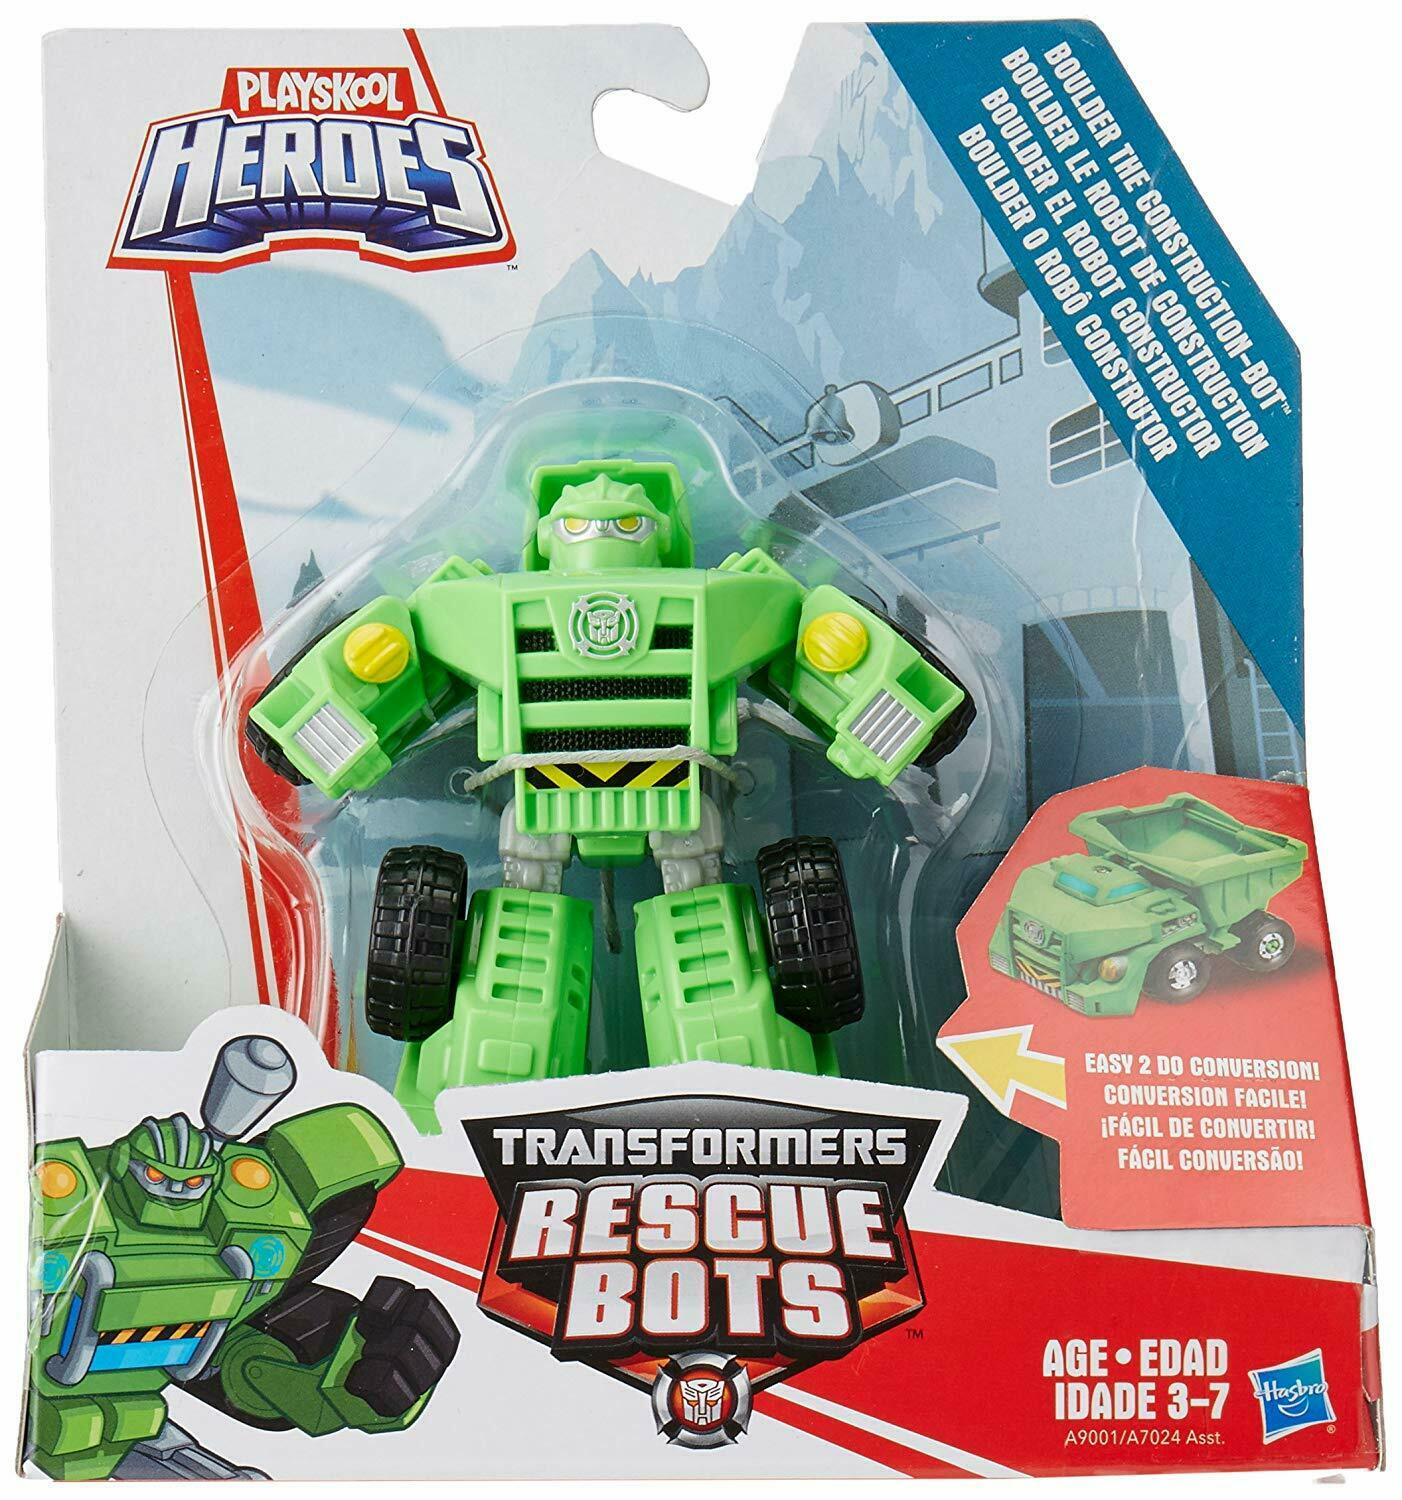 NEW    PLAYSKOOL HEROS TRANSFORMERS RESCUE BOTS BOULDER THE CONSTRUCTION BOT 4f1b57